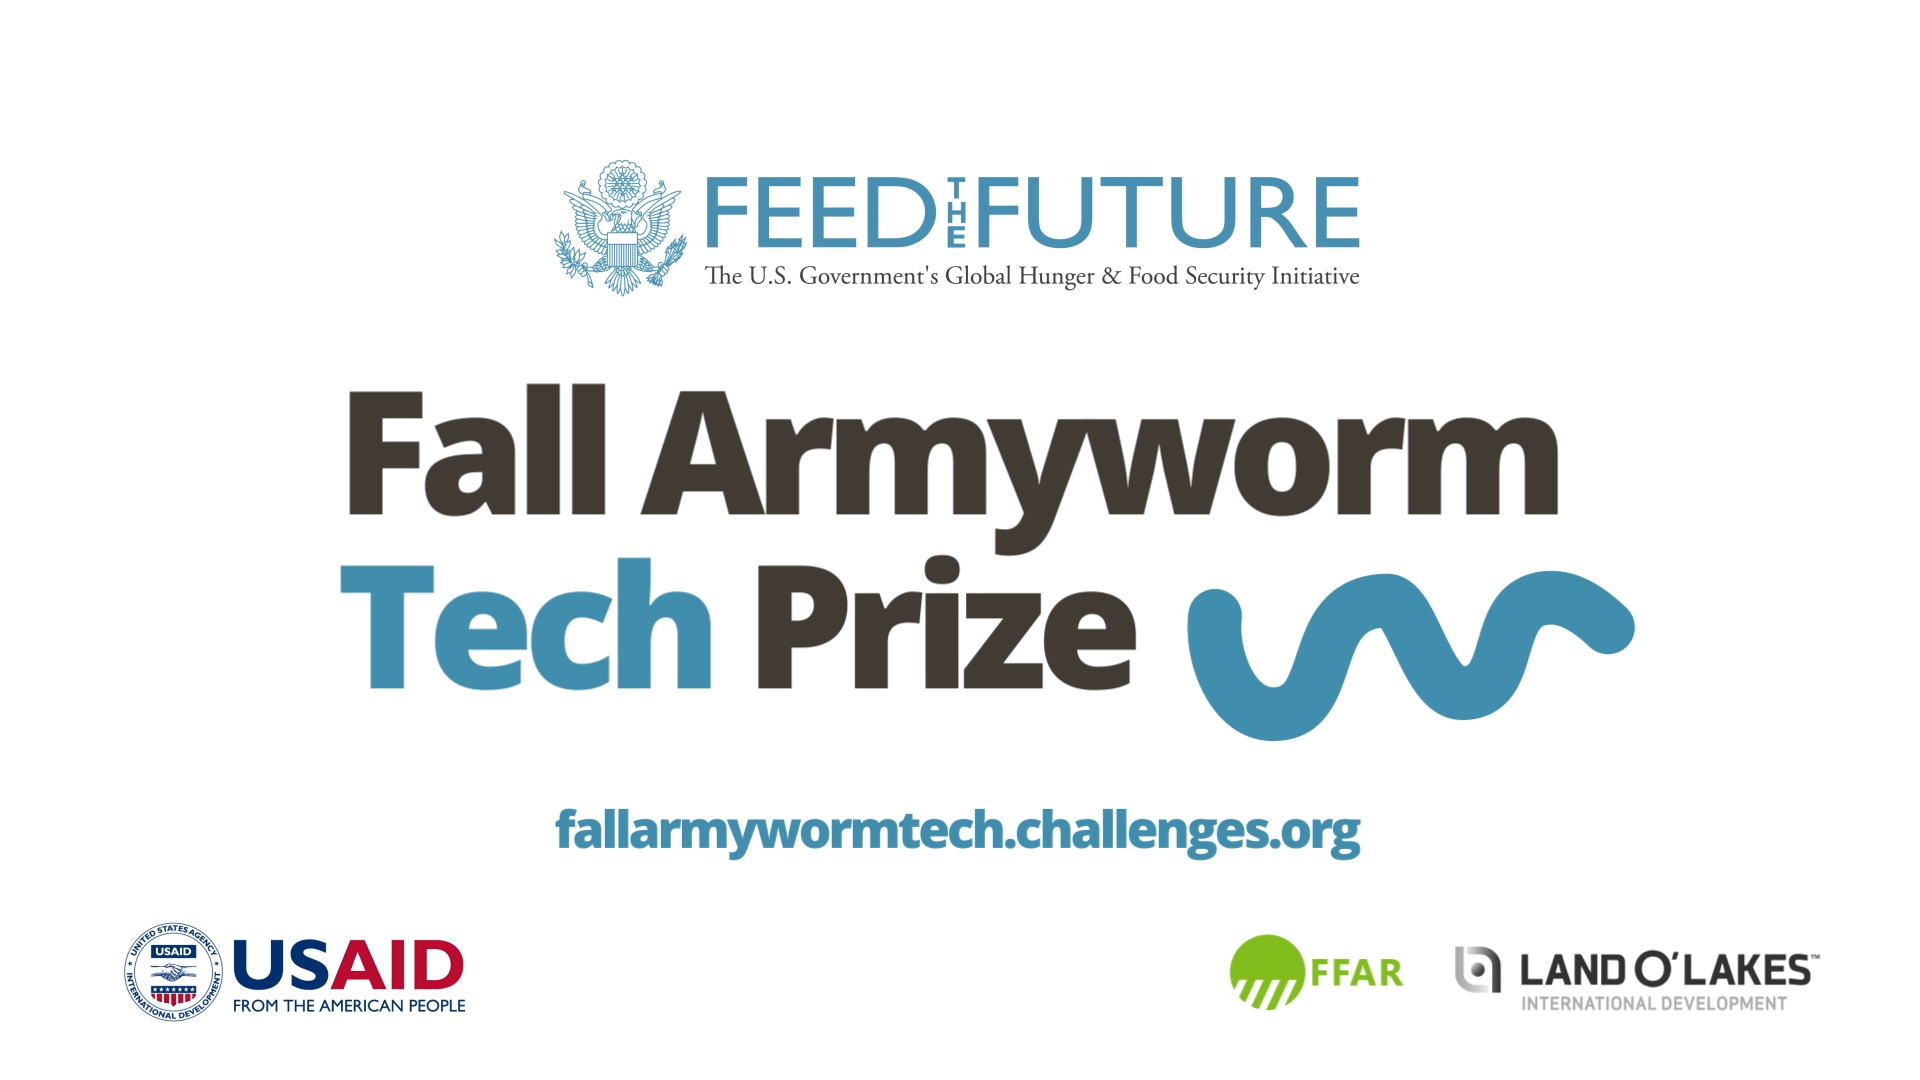 Photo of Fall Armyworm Tech Prize: Uganda has highest number of entries